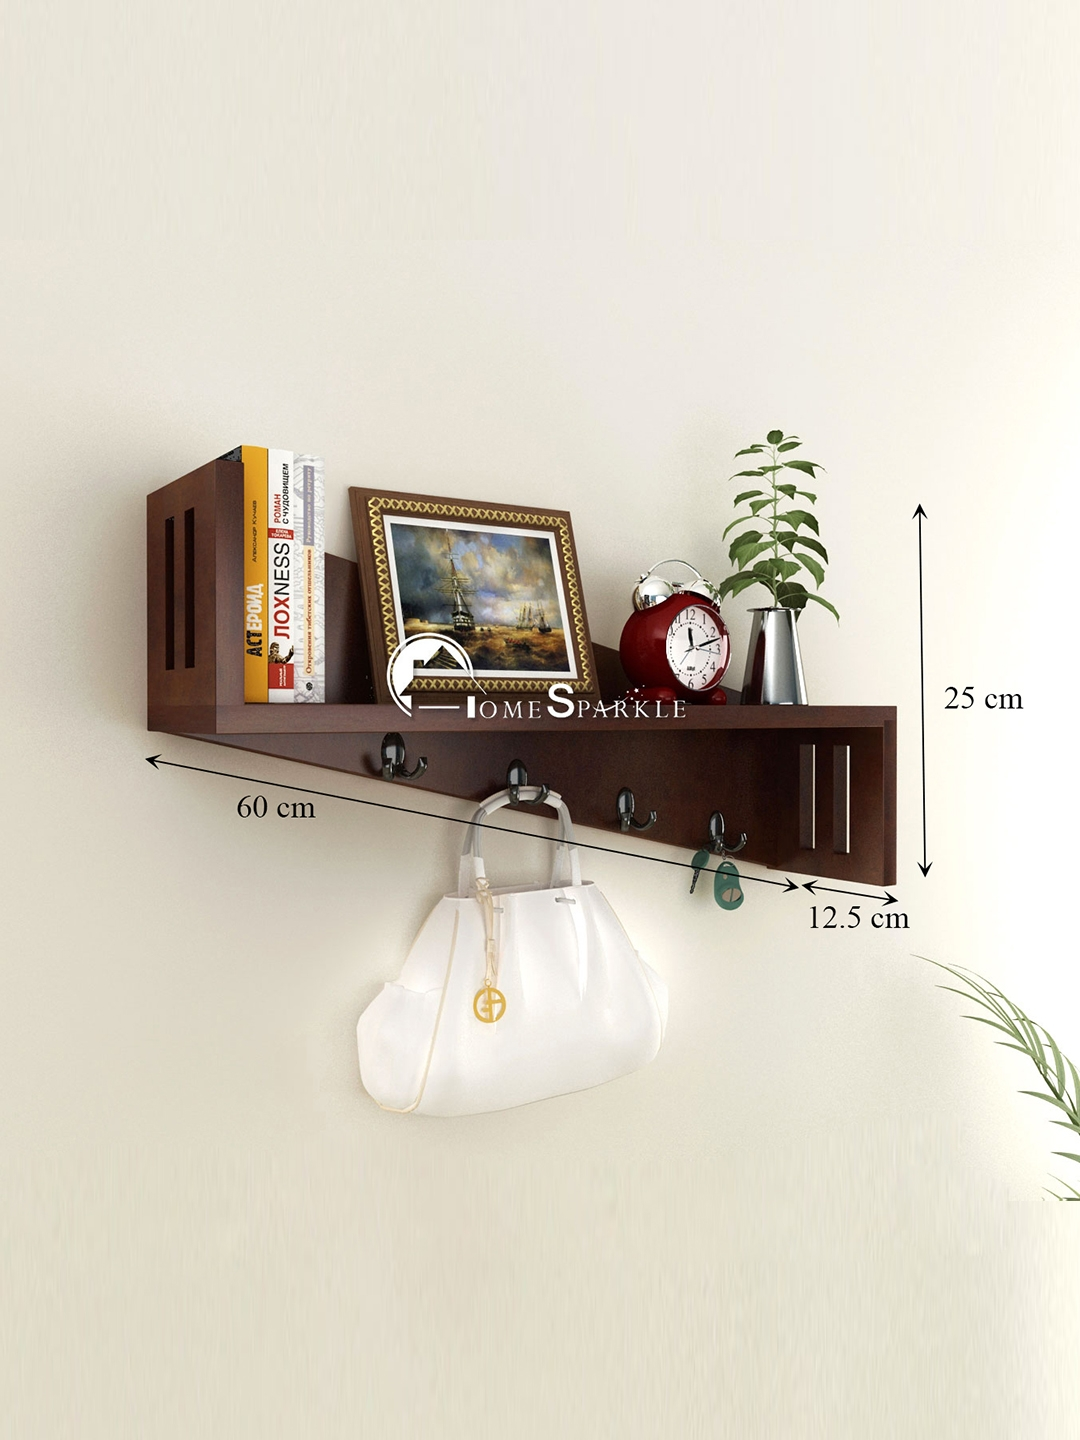 Home Key Holder For Wall Buy Home Sparkle Brown Wall Shelf With Key Holders Wall Shelves